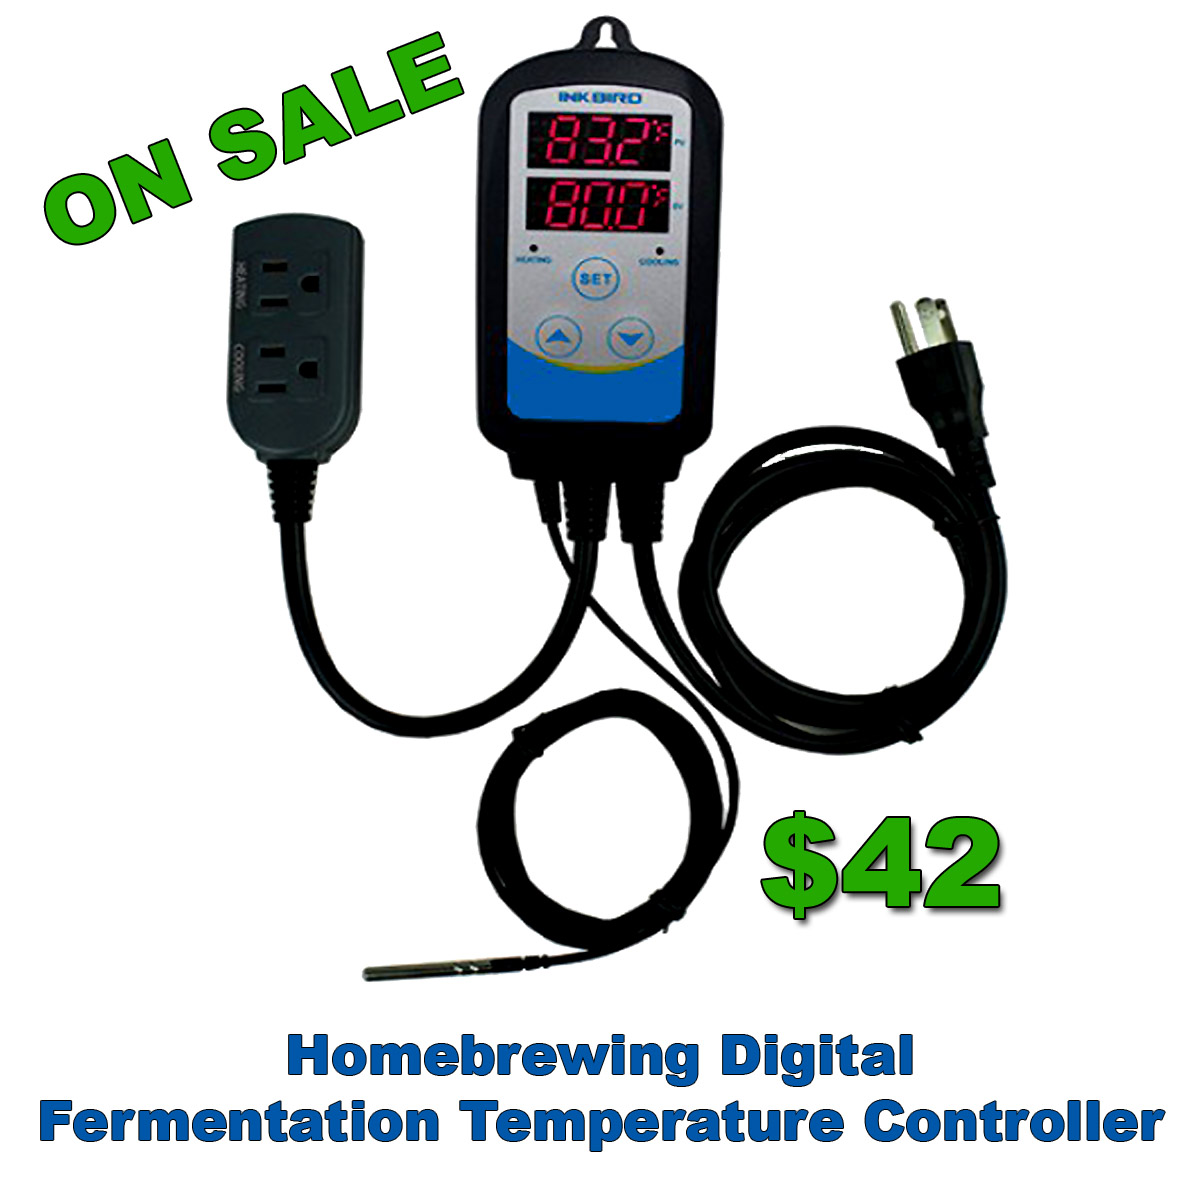 Homebrew Supply and homebrewsupply.com Coupon Codes Promo Codes  #22B000